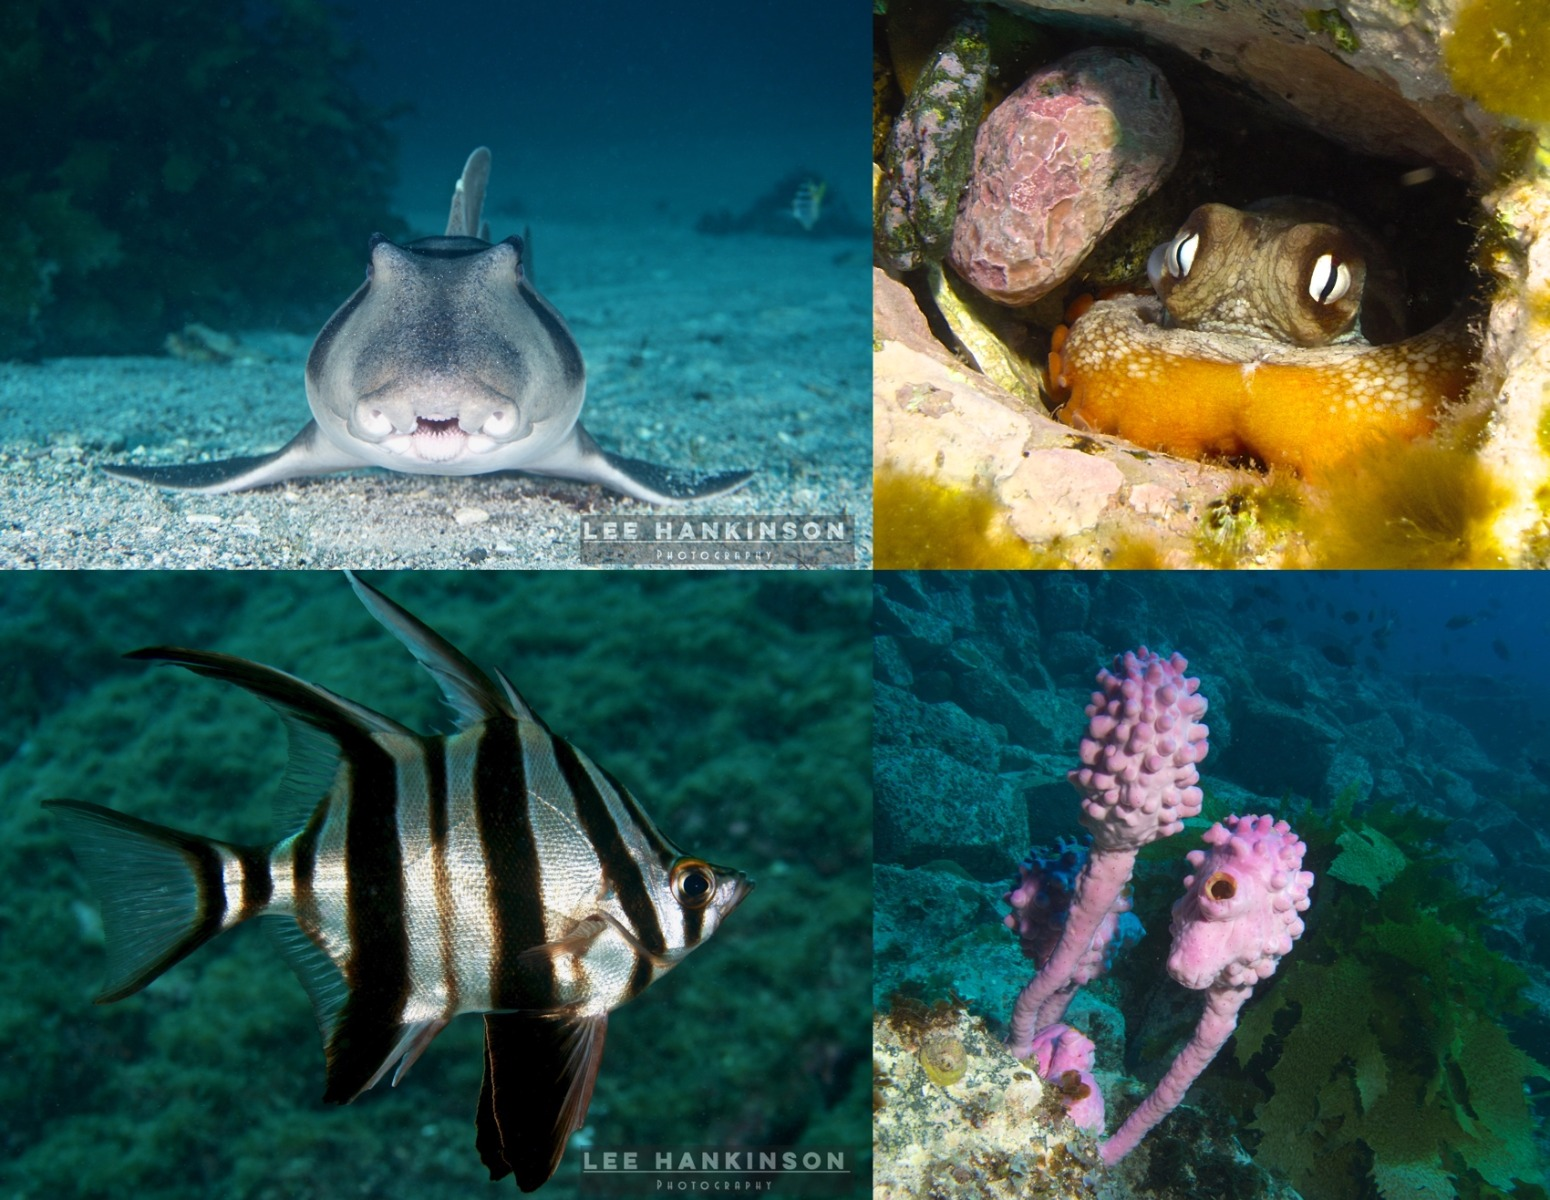 Other marine life at Barunguba such as Port Jackson Shark, Common Sydney Octopus, Old Wife Fish and Sea Tulips